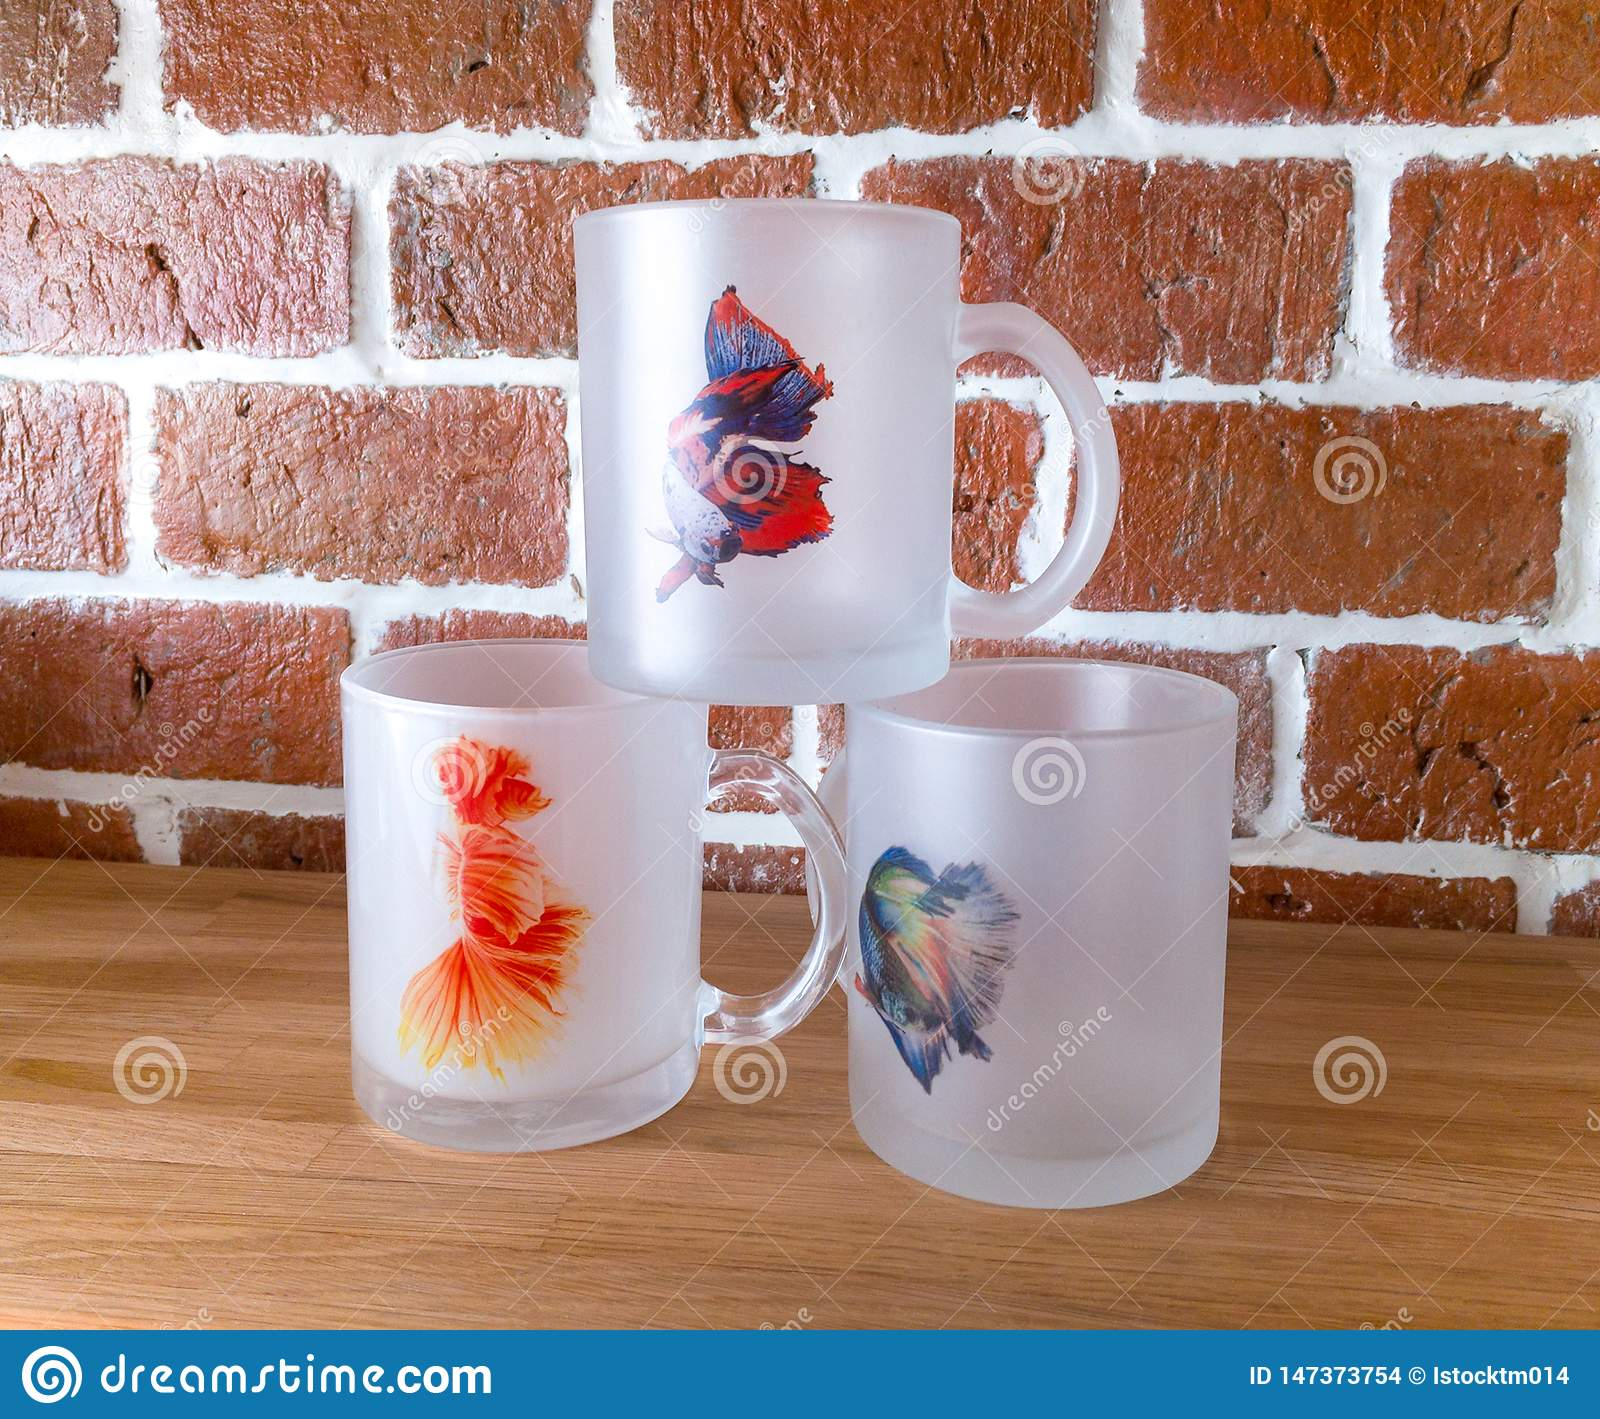 Bangkok Thailand June 14 2017 Overlap Clear Design Mugs And Screen Sublimation Ink In Asian Fighting Fish Concept On Display Editorial Stock Image Image Of Fish Design 147373754